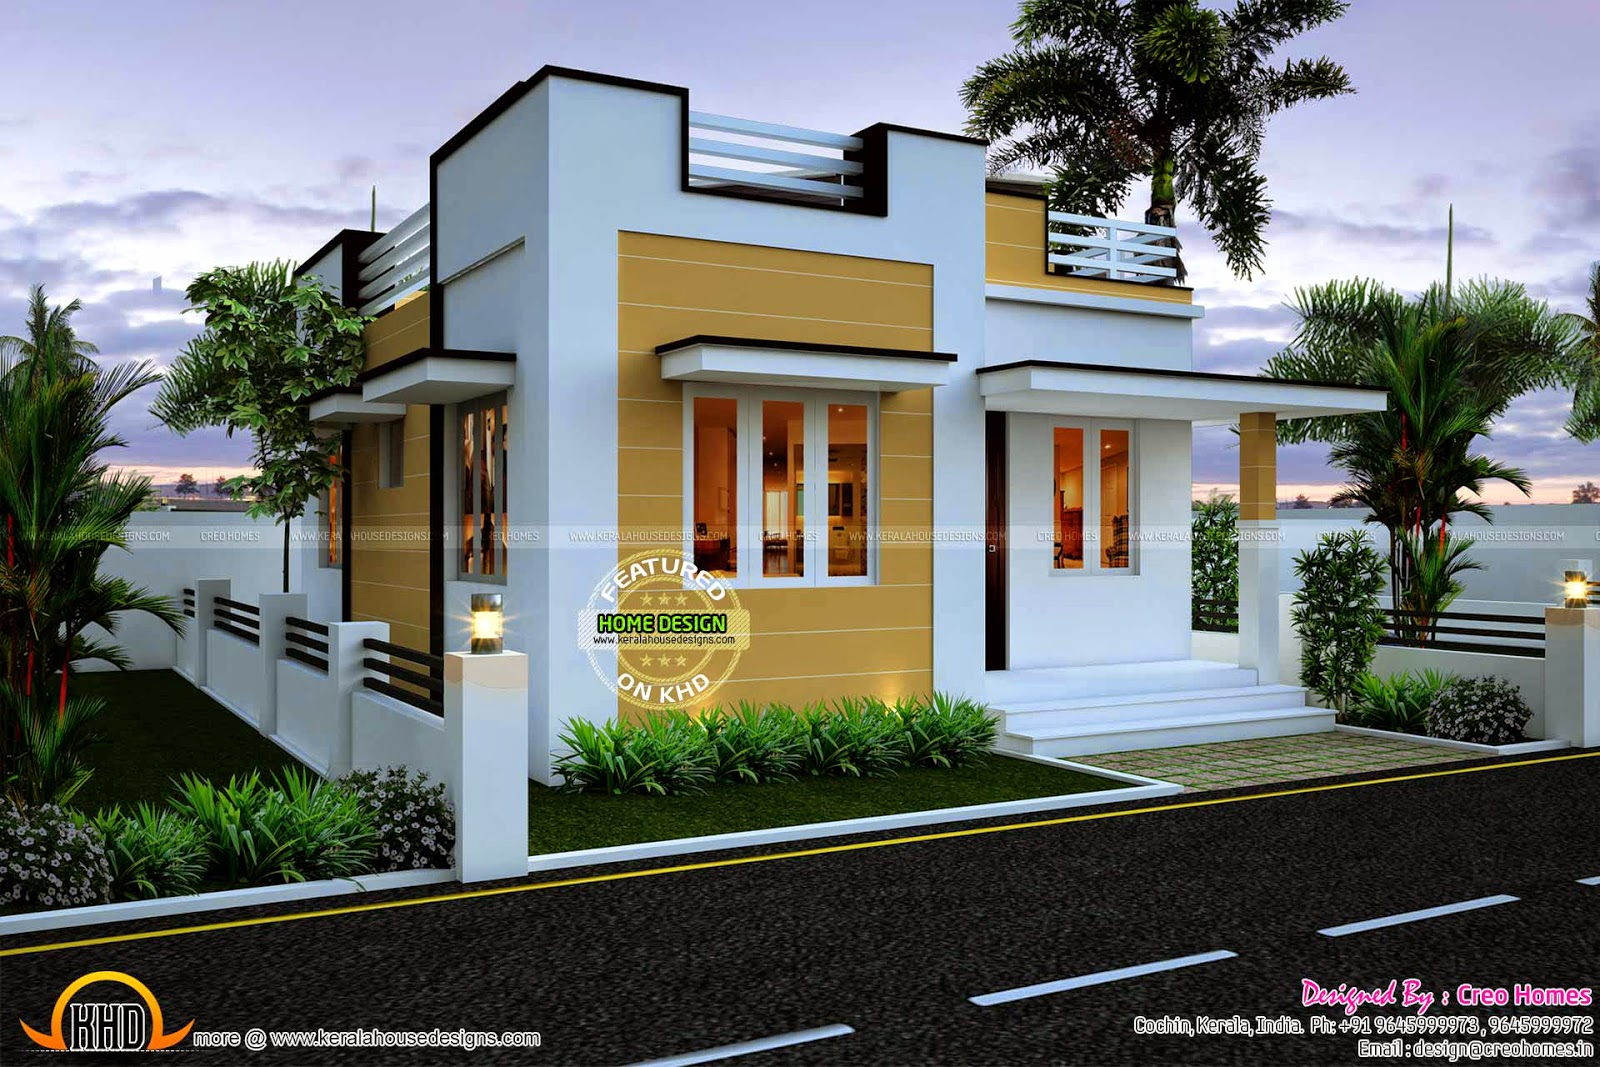 House for 5 lakhs in kerala kerala home design and floor for House designs kerala style low cost